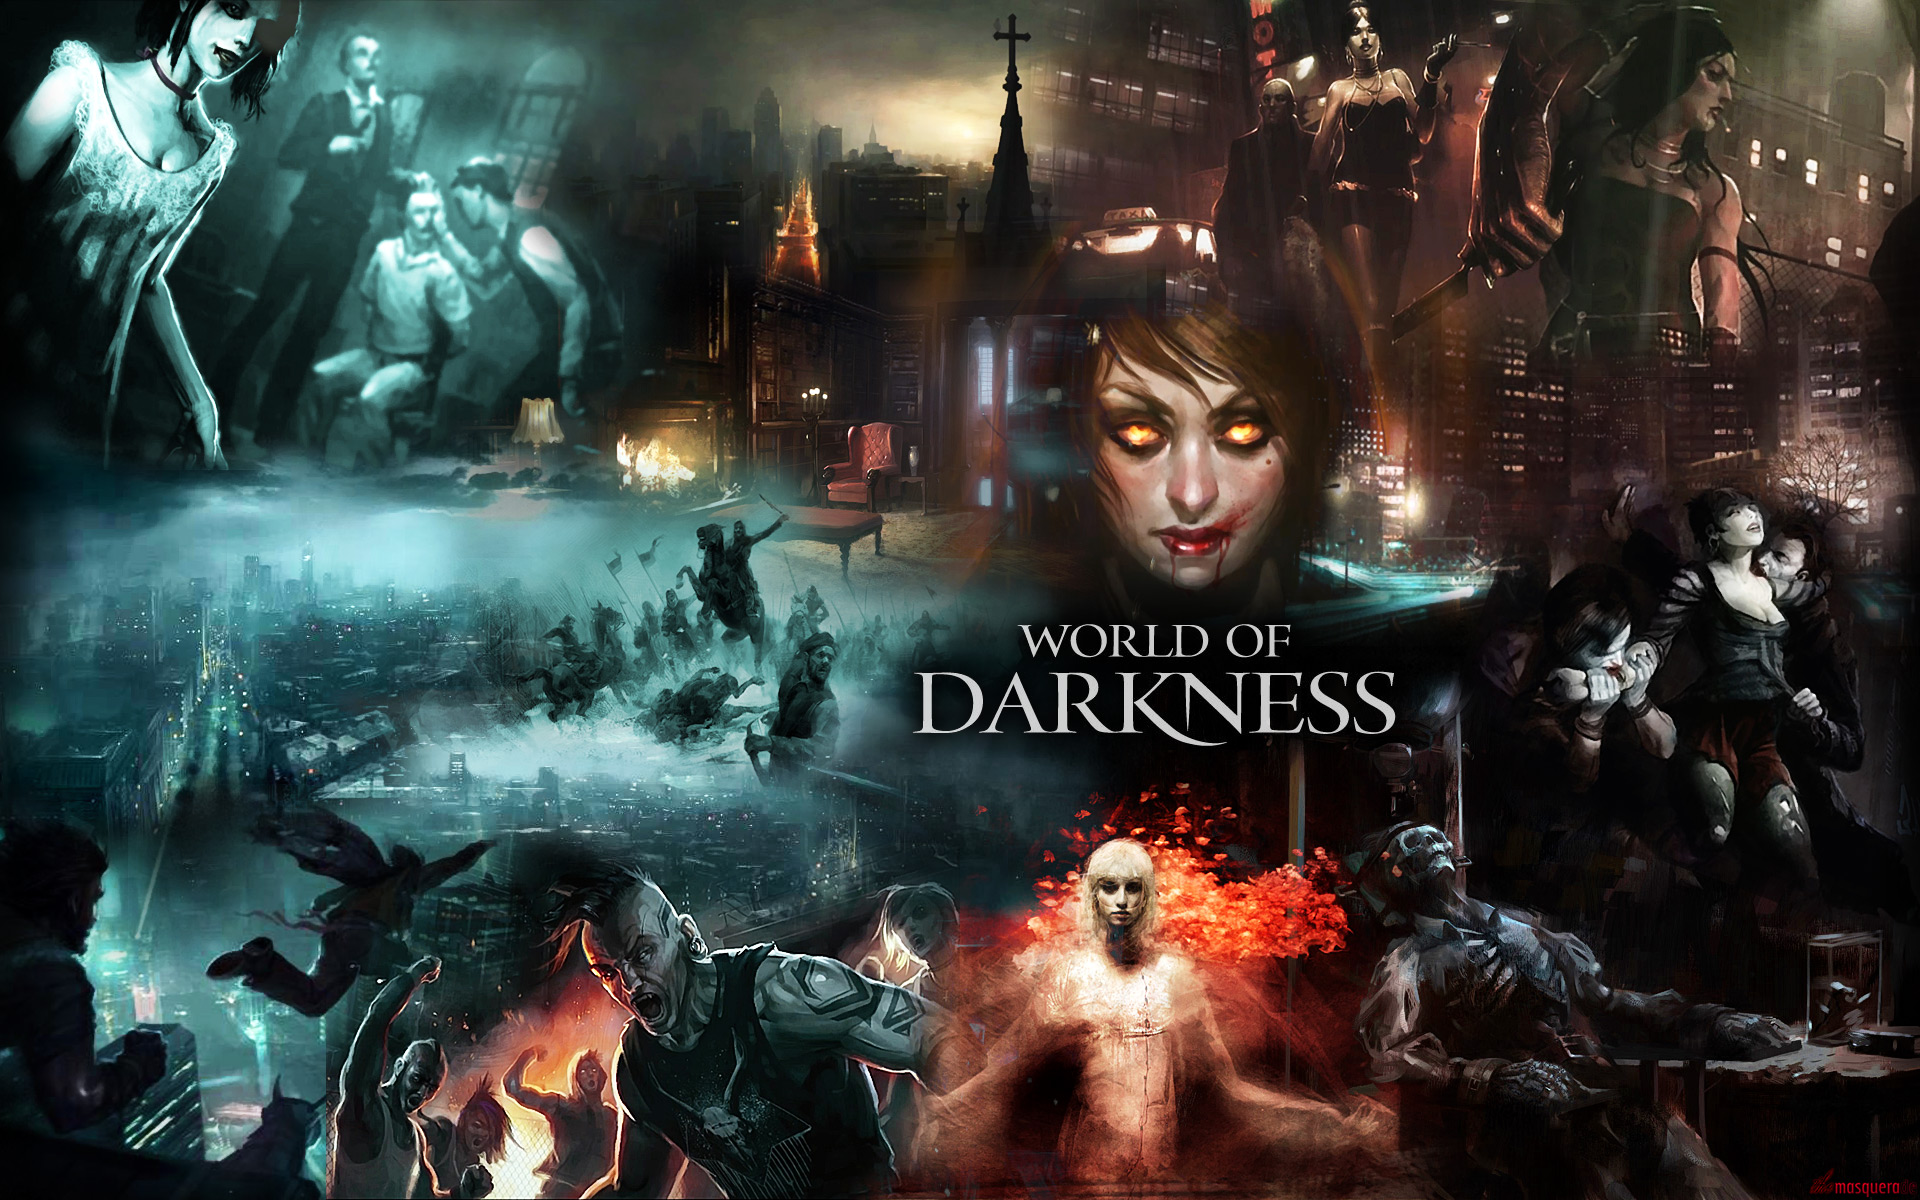 the themes in the garden of evil and heart of darkness Bible verses about darkness john 3:19-21 esv / 162 helpful votes helpful not helpful and this is the judgment: the light has come into the world, and people loved the darkness rather than the light because their works were evil.